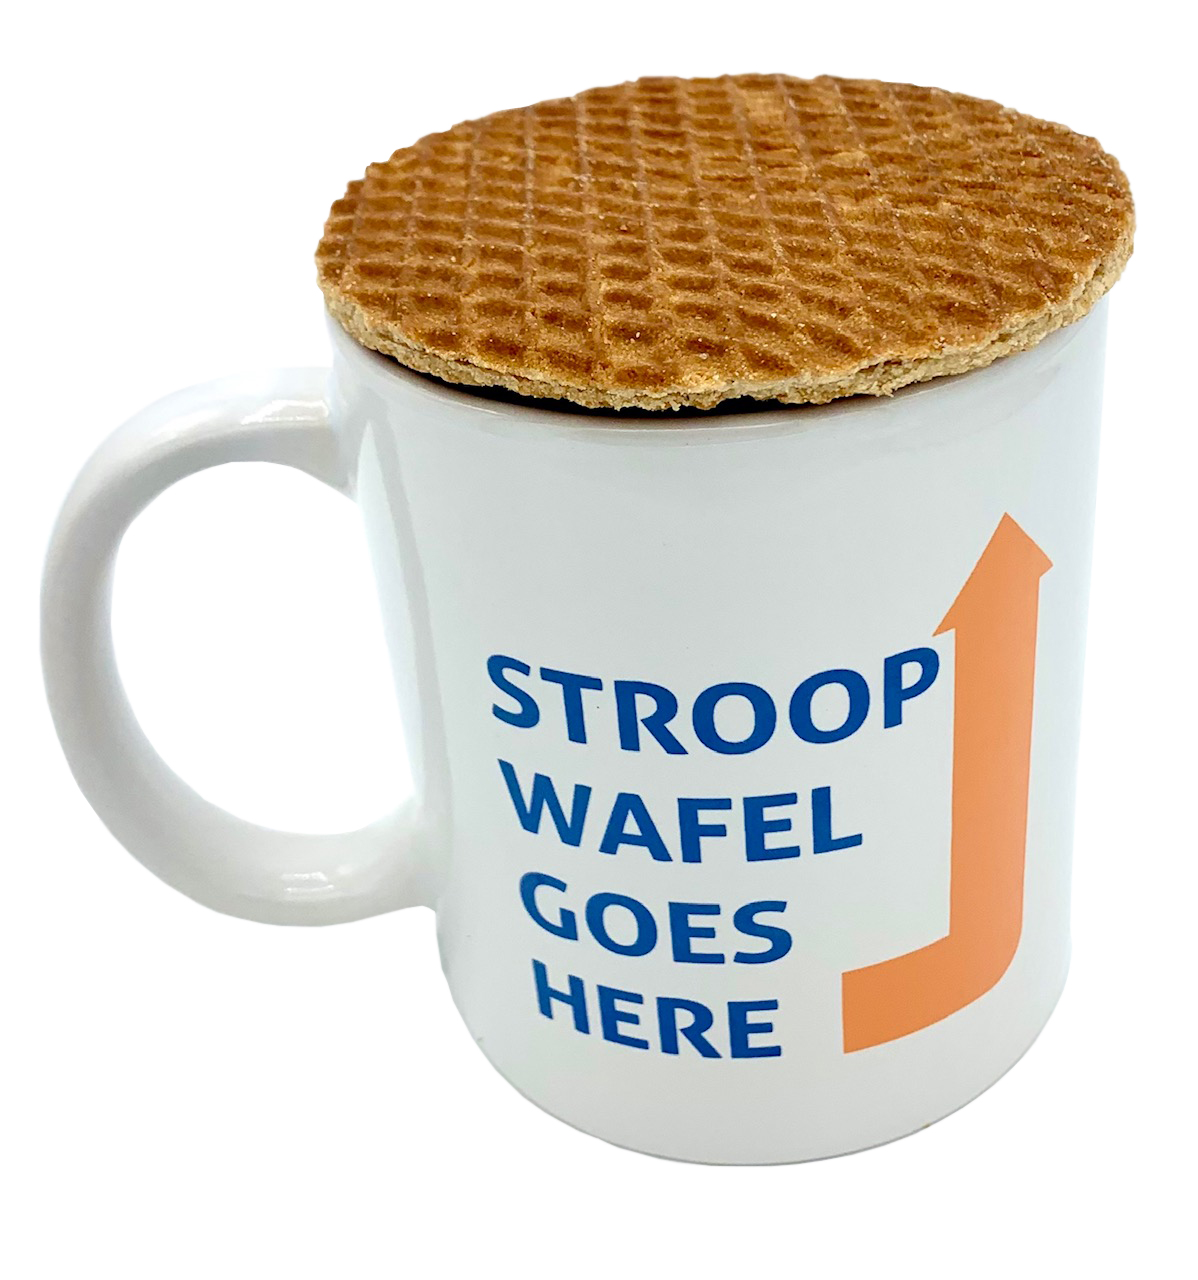 What is a Stroopwafel